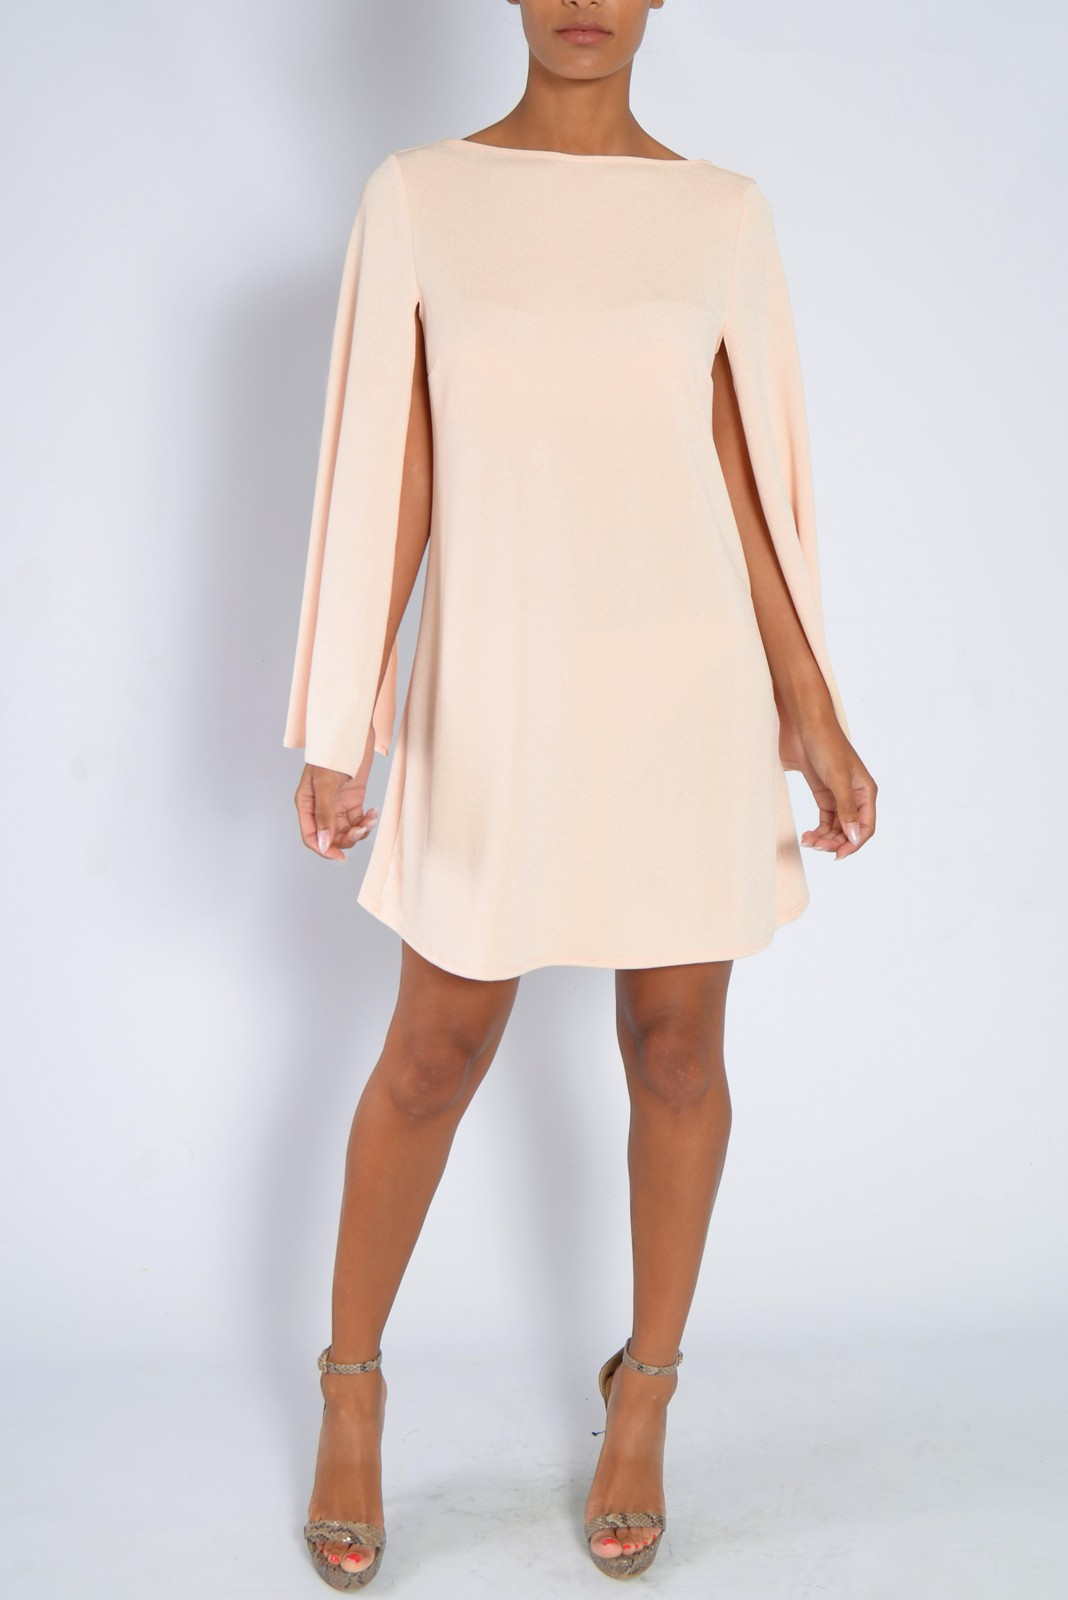 Blush Pink Cape Sleeve Shift Dress From Rare London